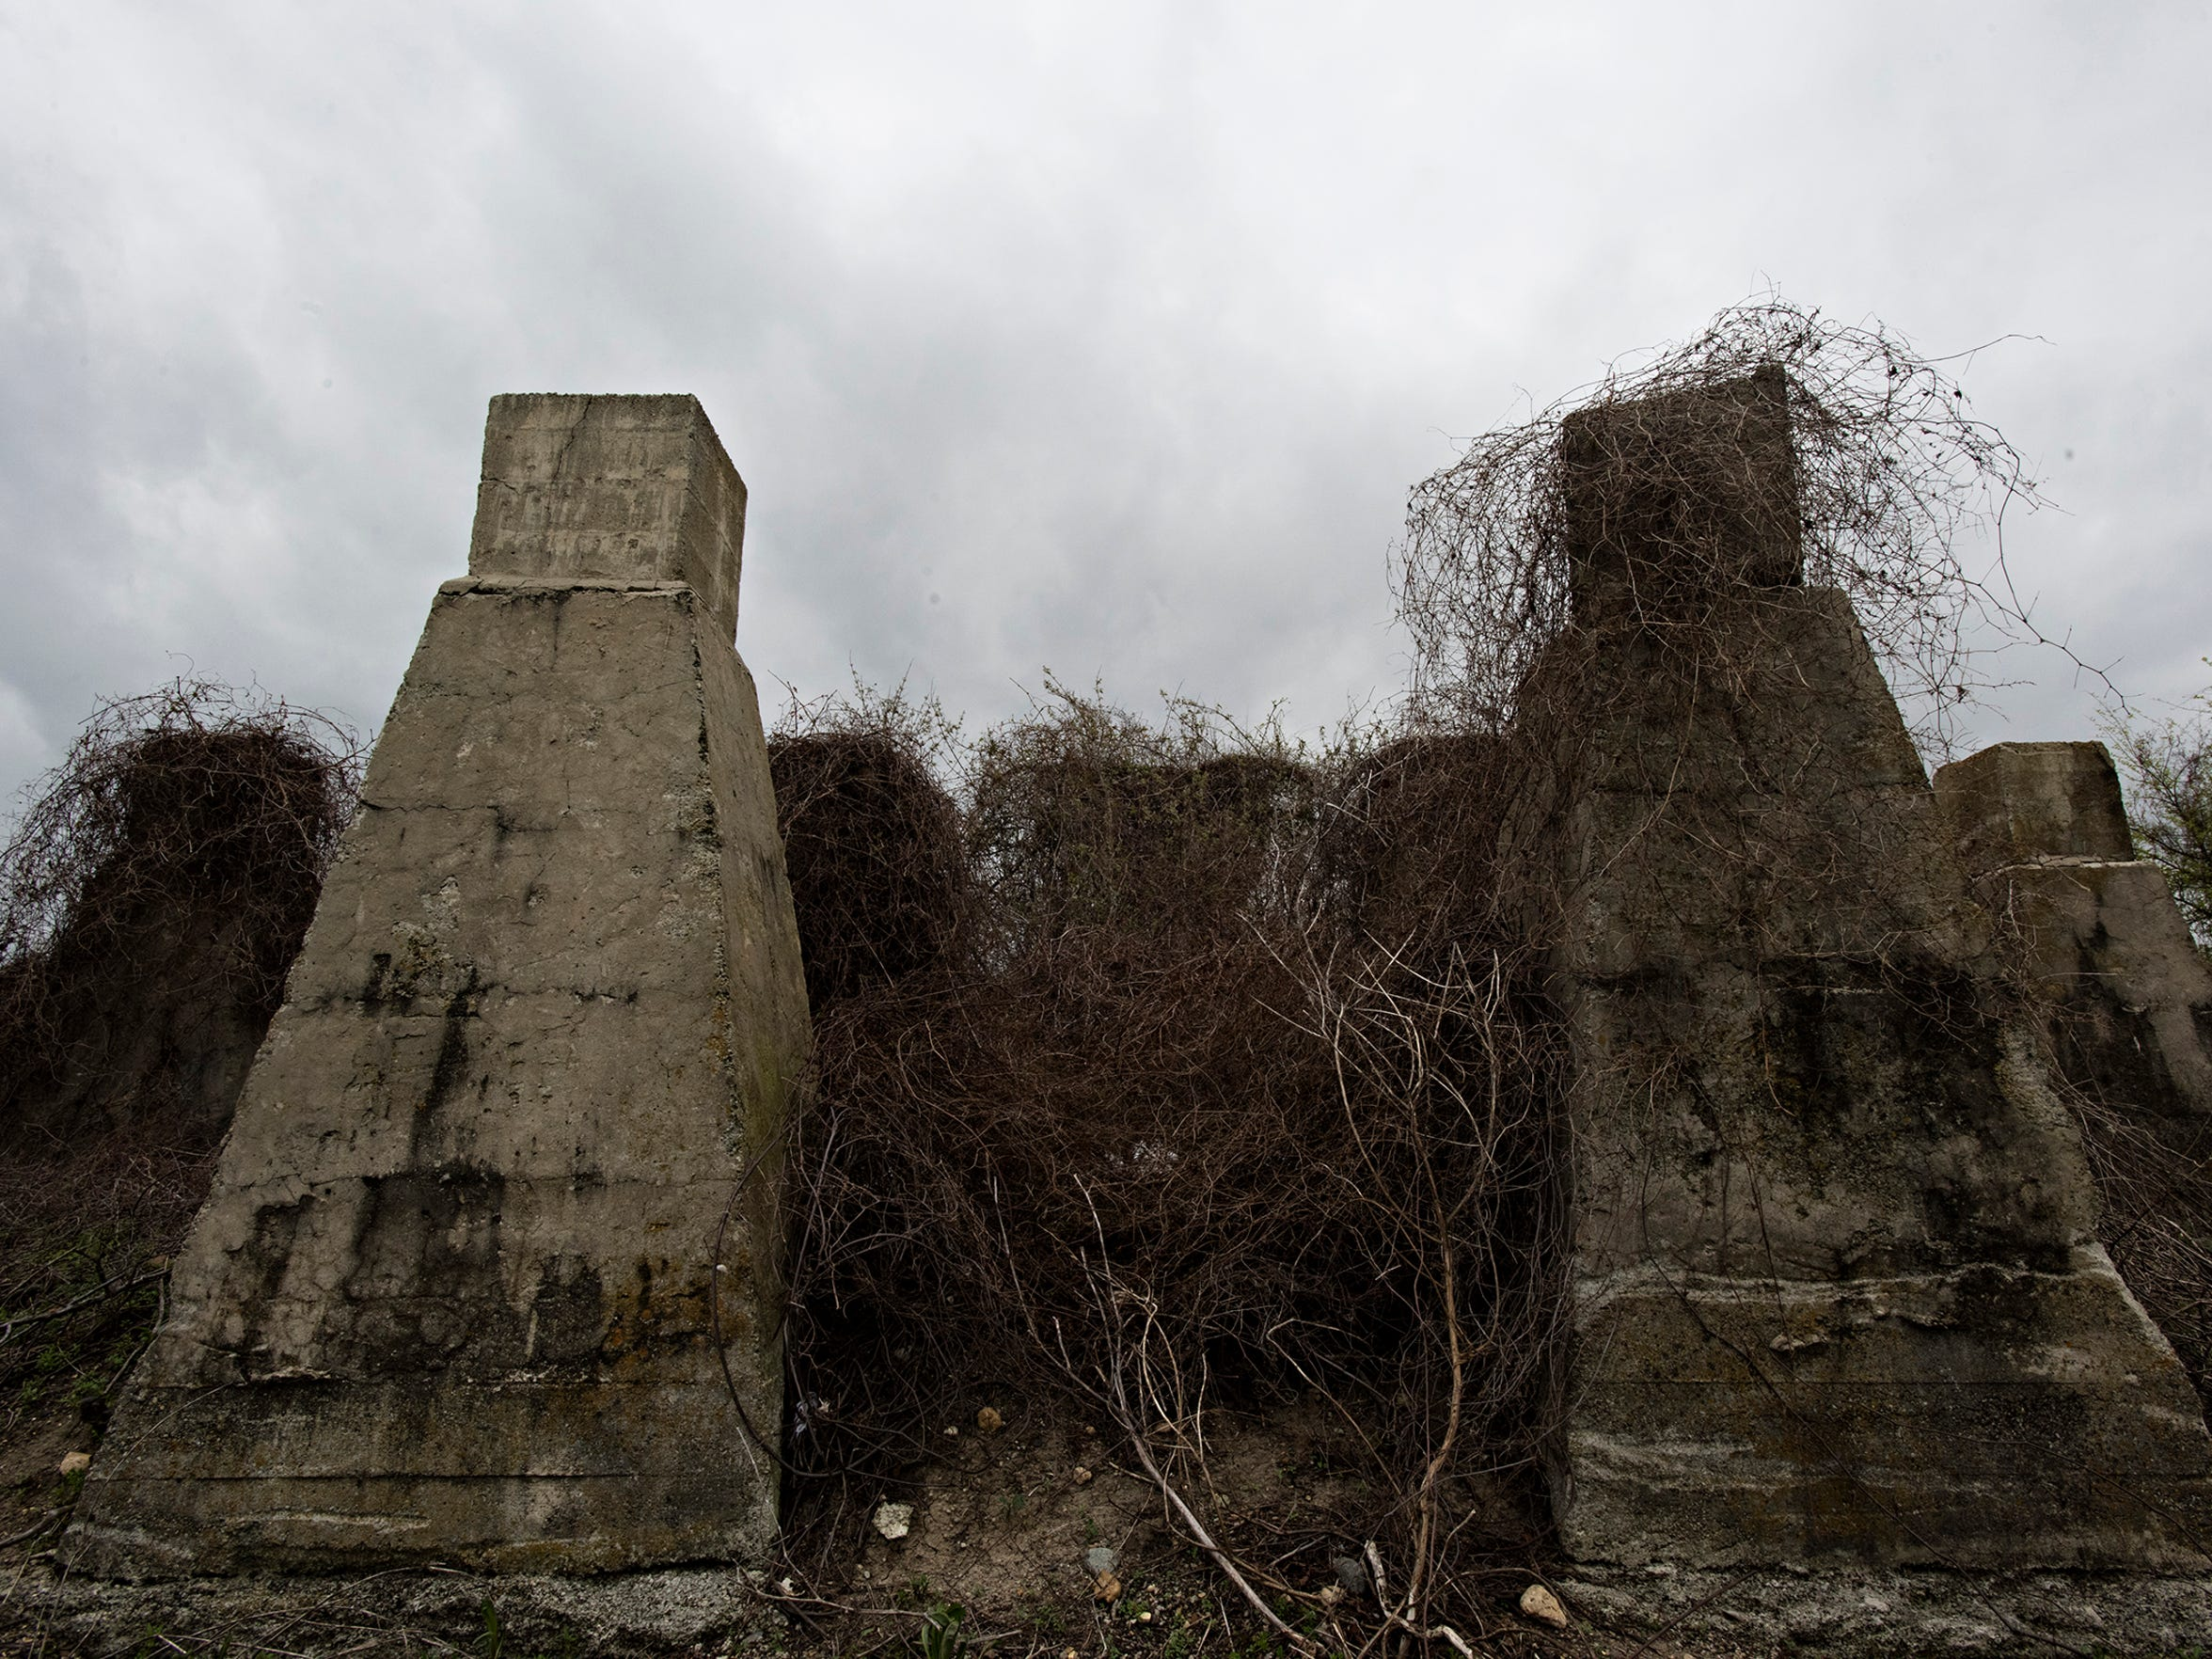 The supports of a railroad water tower that is believed to be the site of the lynching of men who were attempting to flee Elaine, Arkansas, by rail during the 1919 Elaine Massacre. James White, Elaine Legacy Center director, said the men were hanged and left for days from the water tower on the railroad used to refill trains.